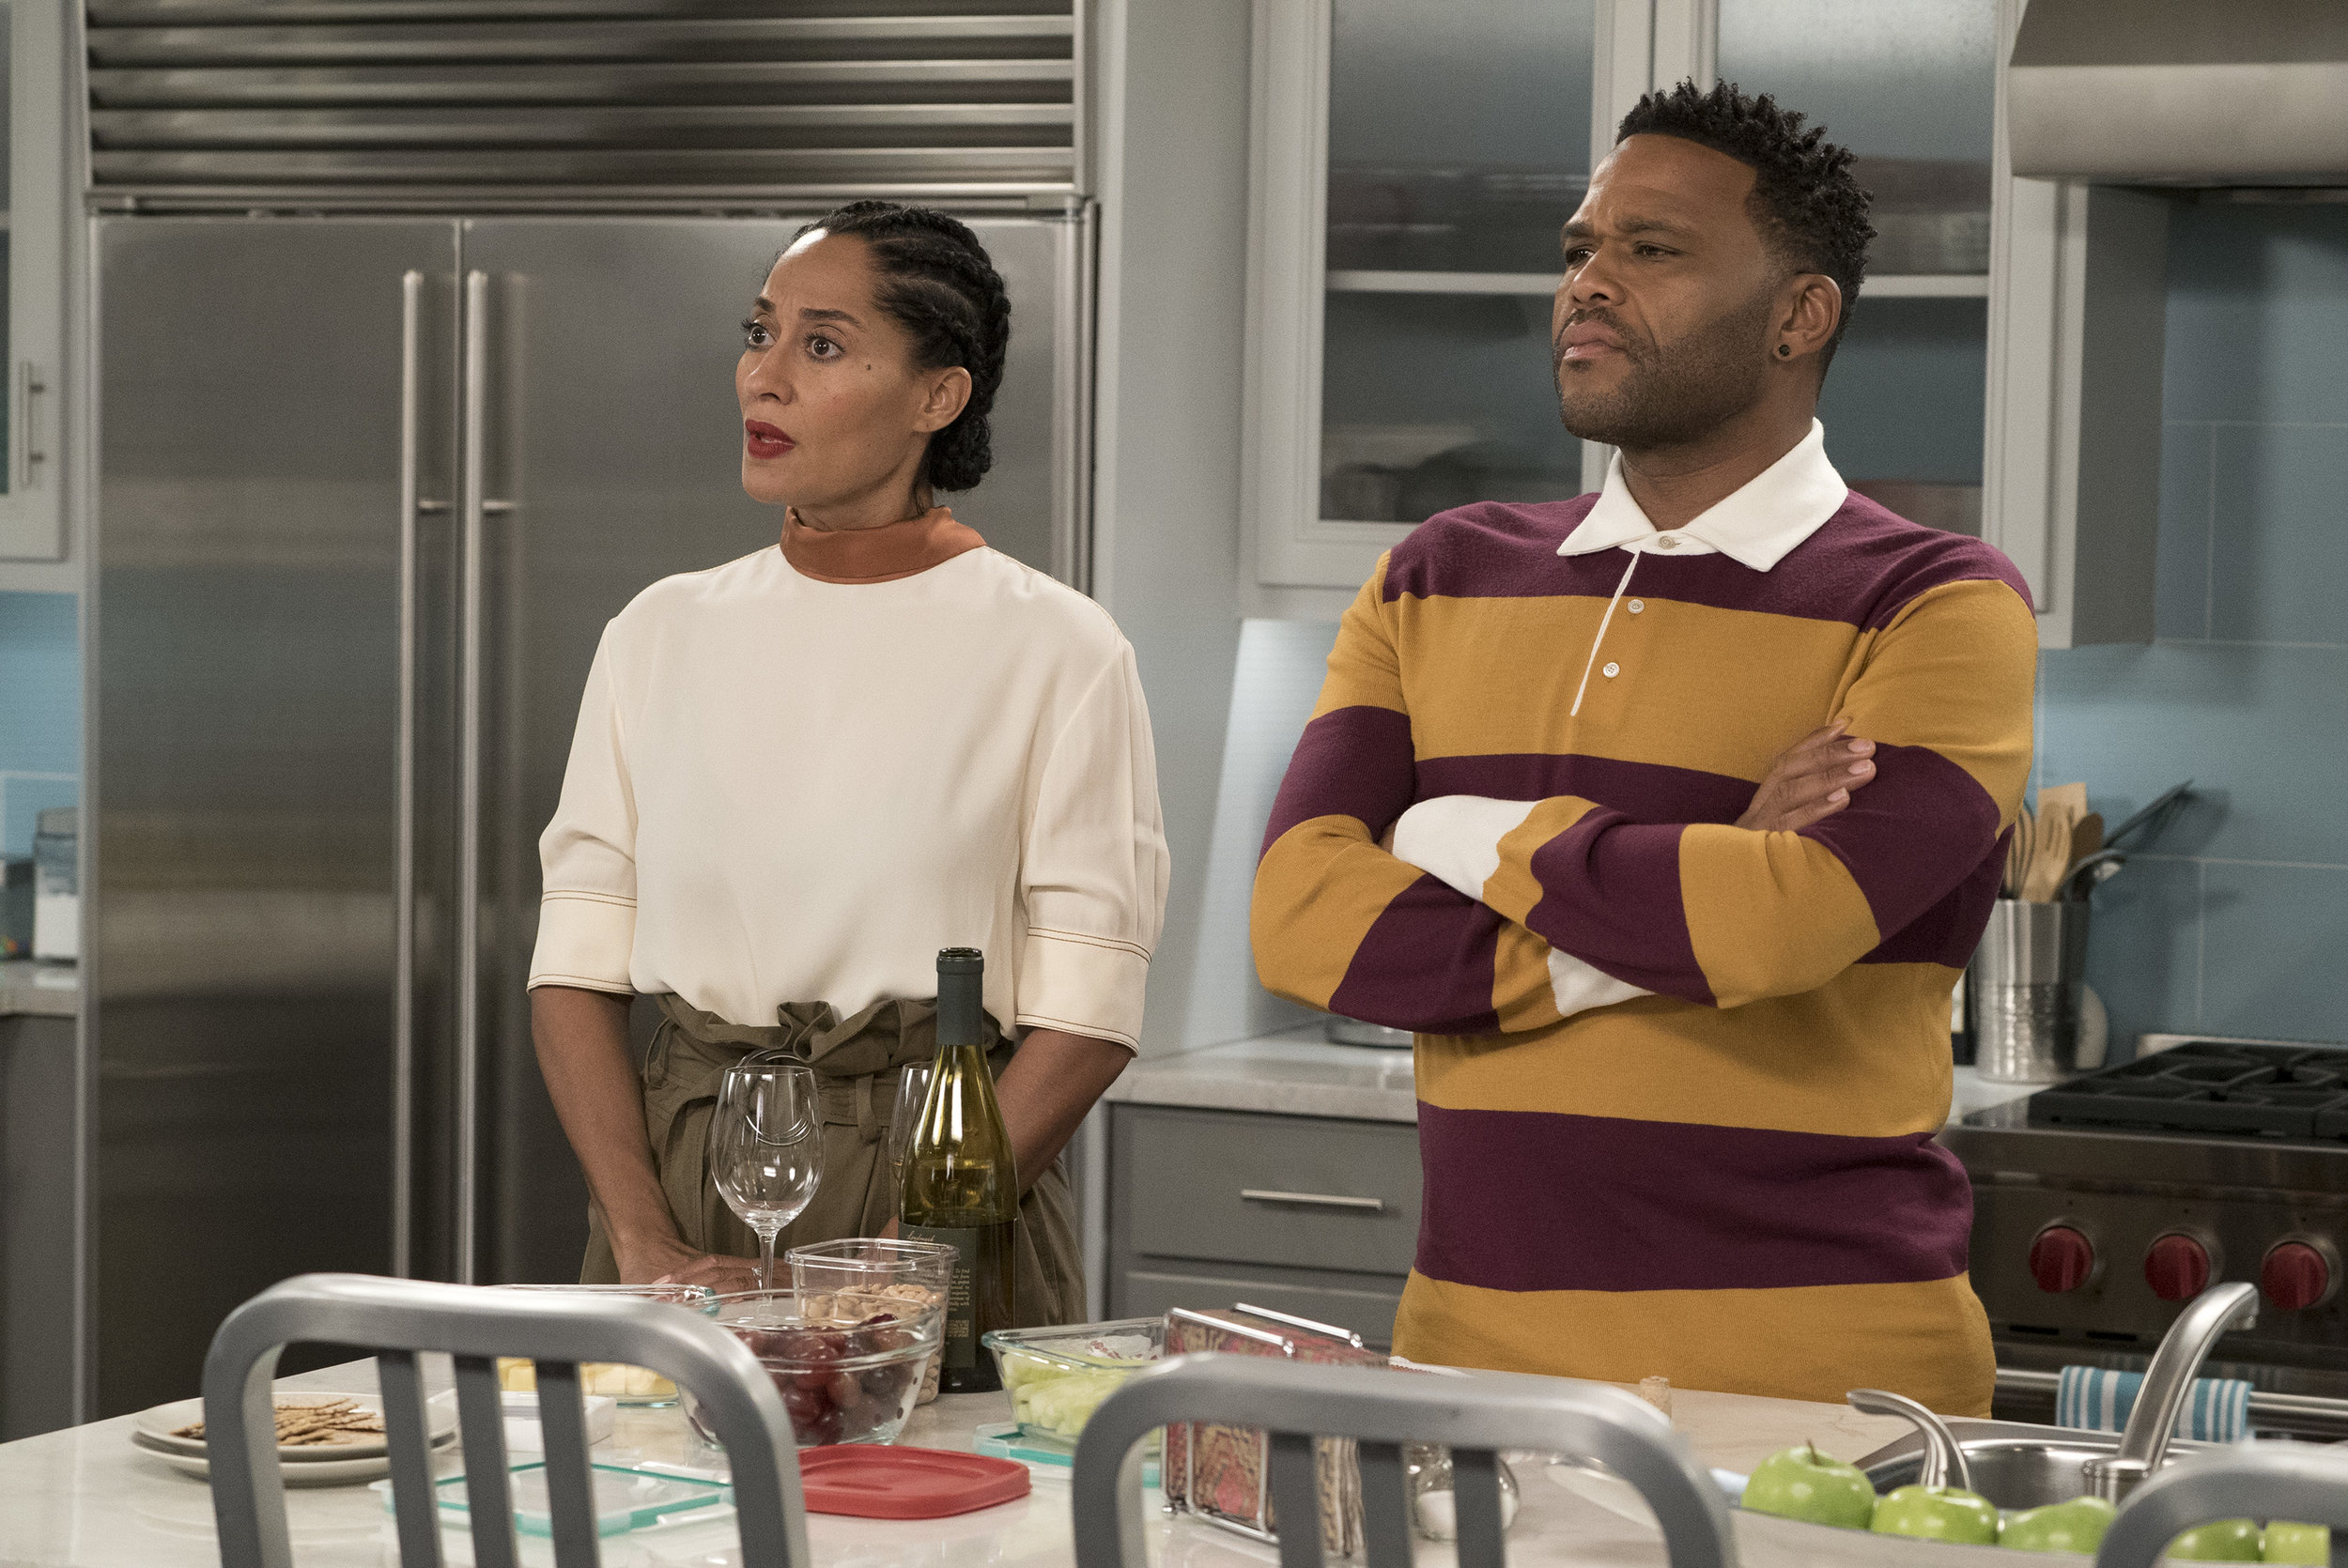 """theshaderoom.com  Looks like ABC wasn't here for a """"Black-ish"""" episode about the National Anthem protests. According to reports, the network decided to shelve an episode titled """"Please, Baby Please"""" indefinitely due to """"creative differences"""" with creator and showrunner Kenya Barris."""